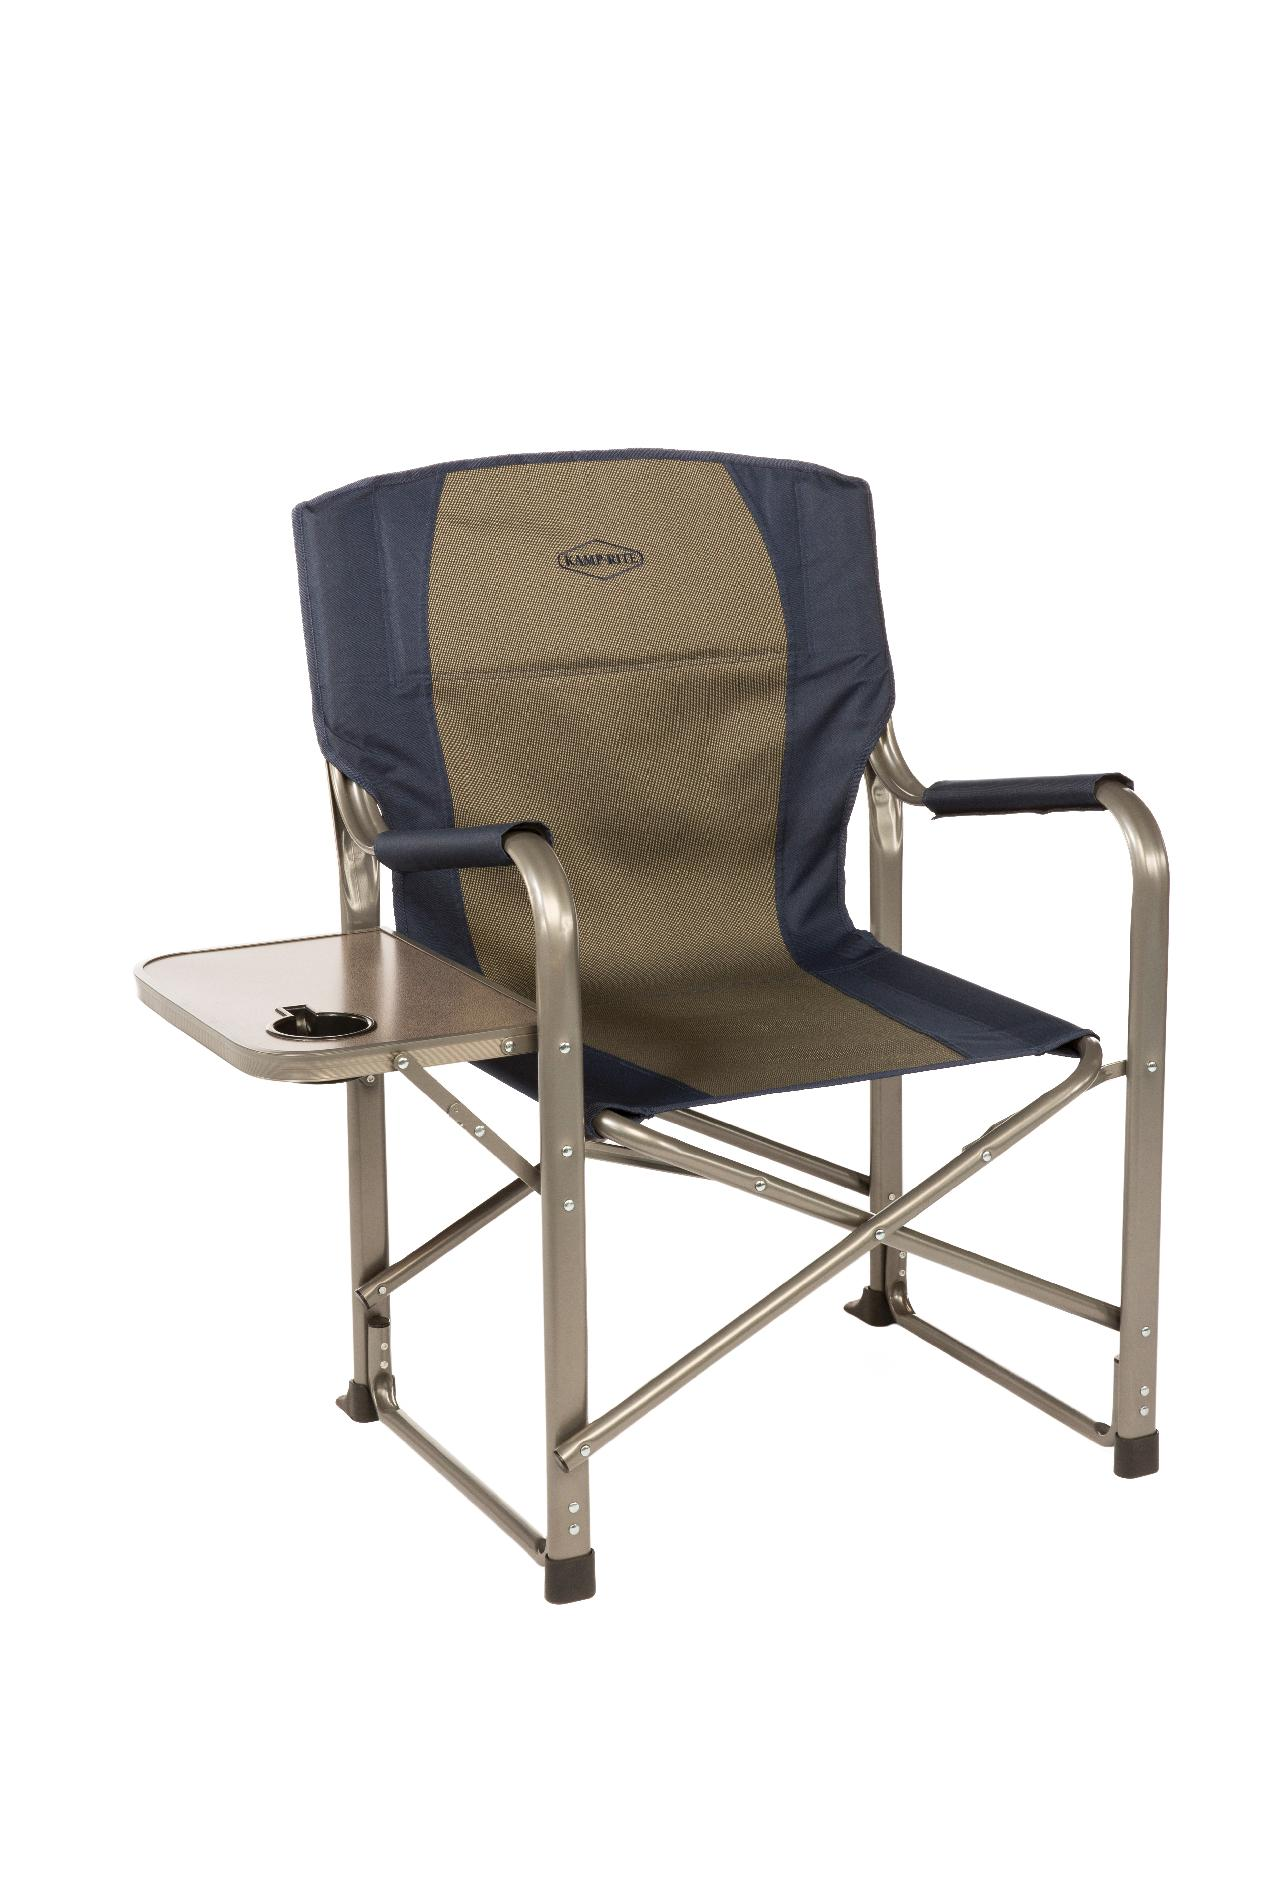 swimways premium canopy chair portable makeup with headrest camping chairs: find tables at kmart